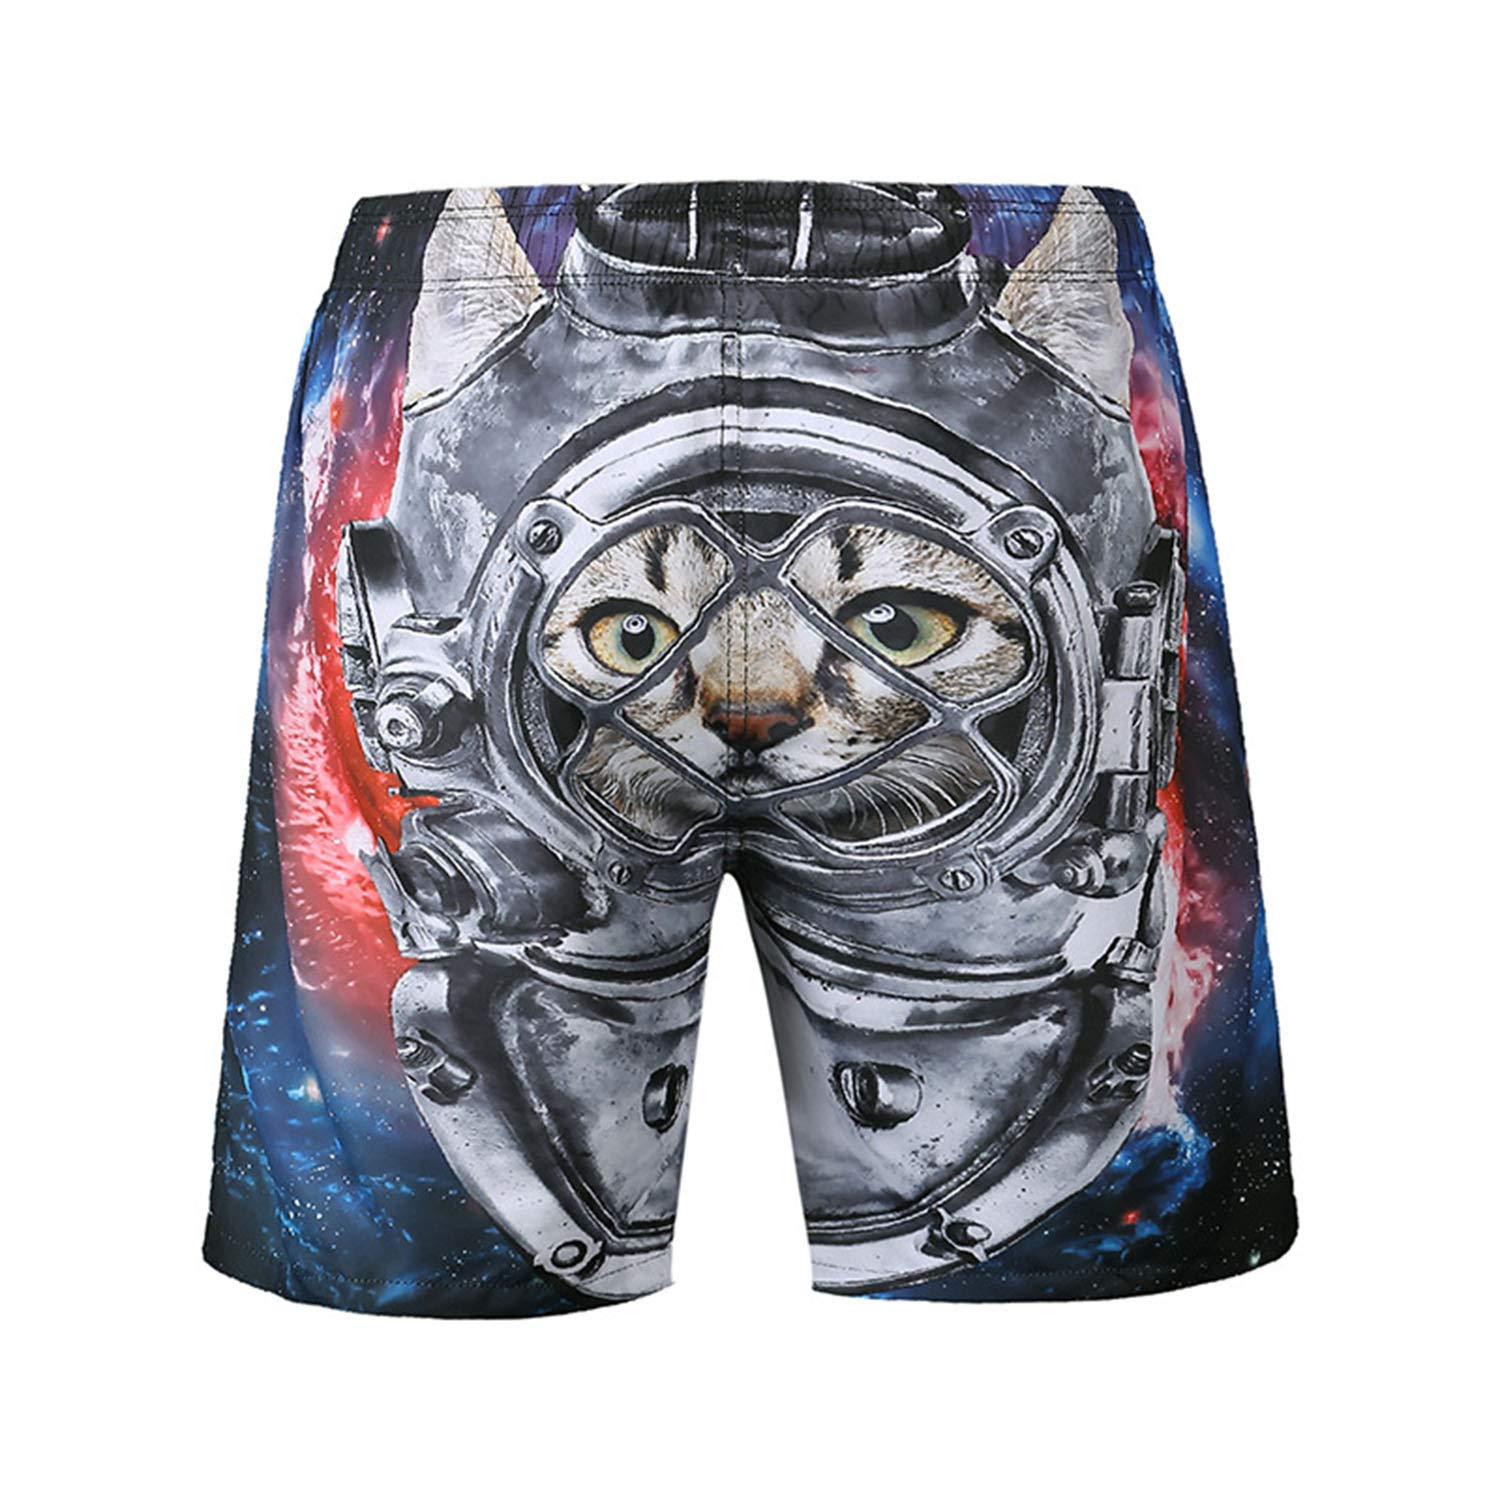 DHSPKN 3D Mens Swim Trunks Surf Quick Dry Board Shorts Bathing Suit Funny Summer Beach Pants for Men